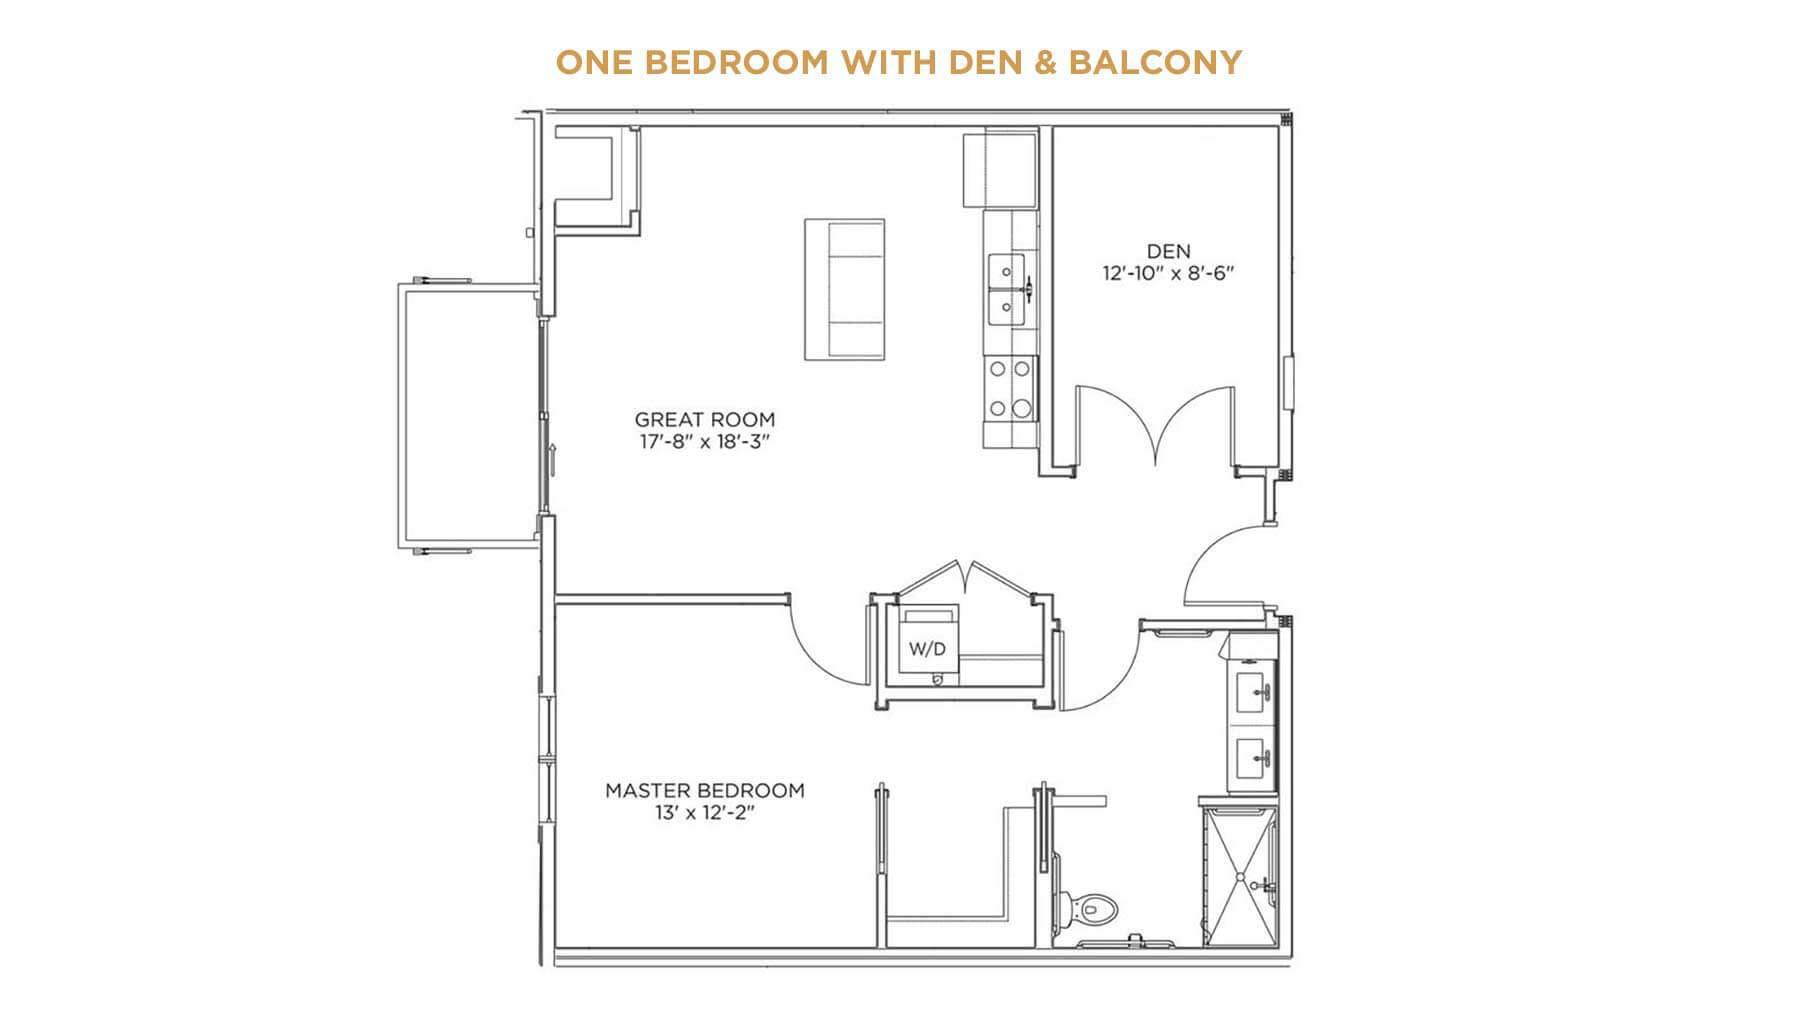 One Bedroom with Den and Balcony Floor Plan - apartments for assisted living Cedar Rapids IA - Indian Creek